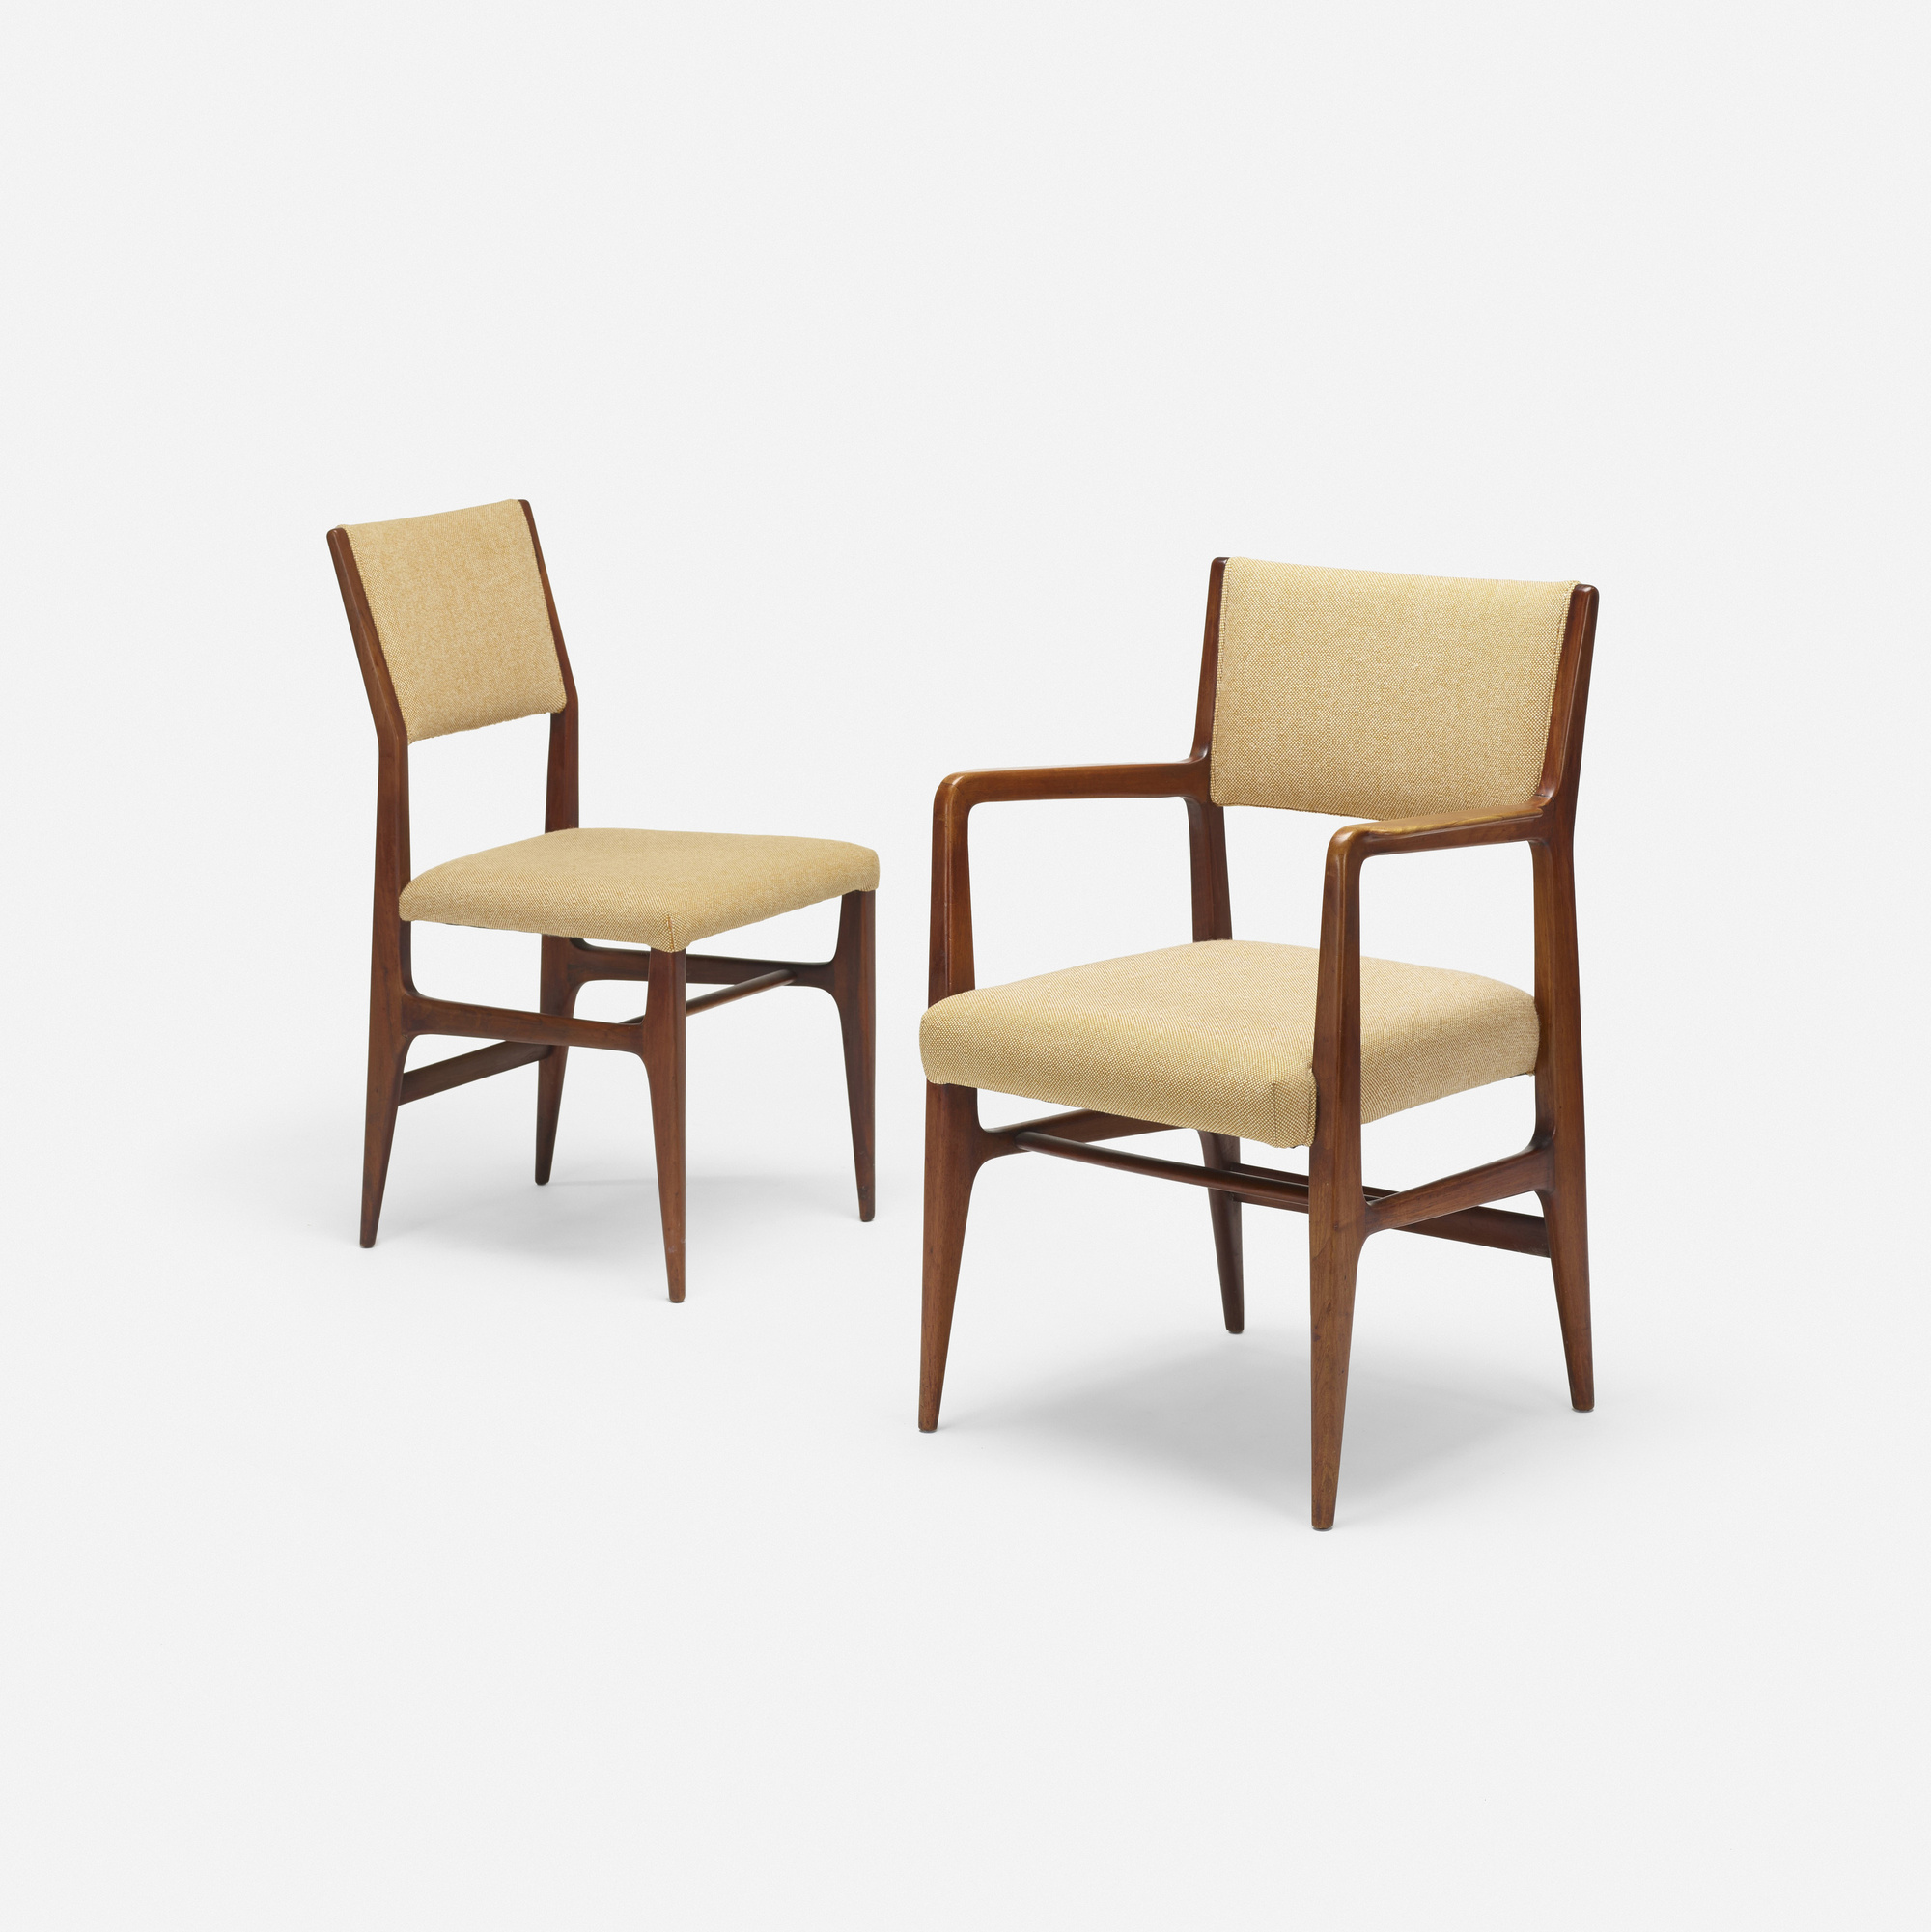 302: Gio Ponti / dining chairs, set of six (4 of 4)